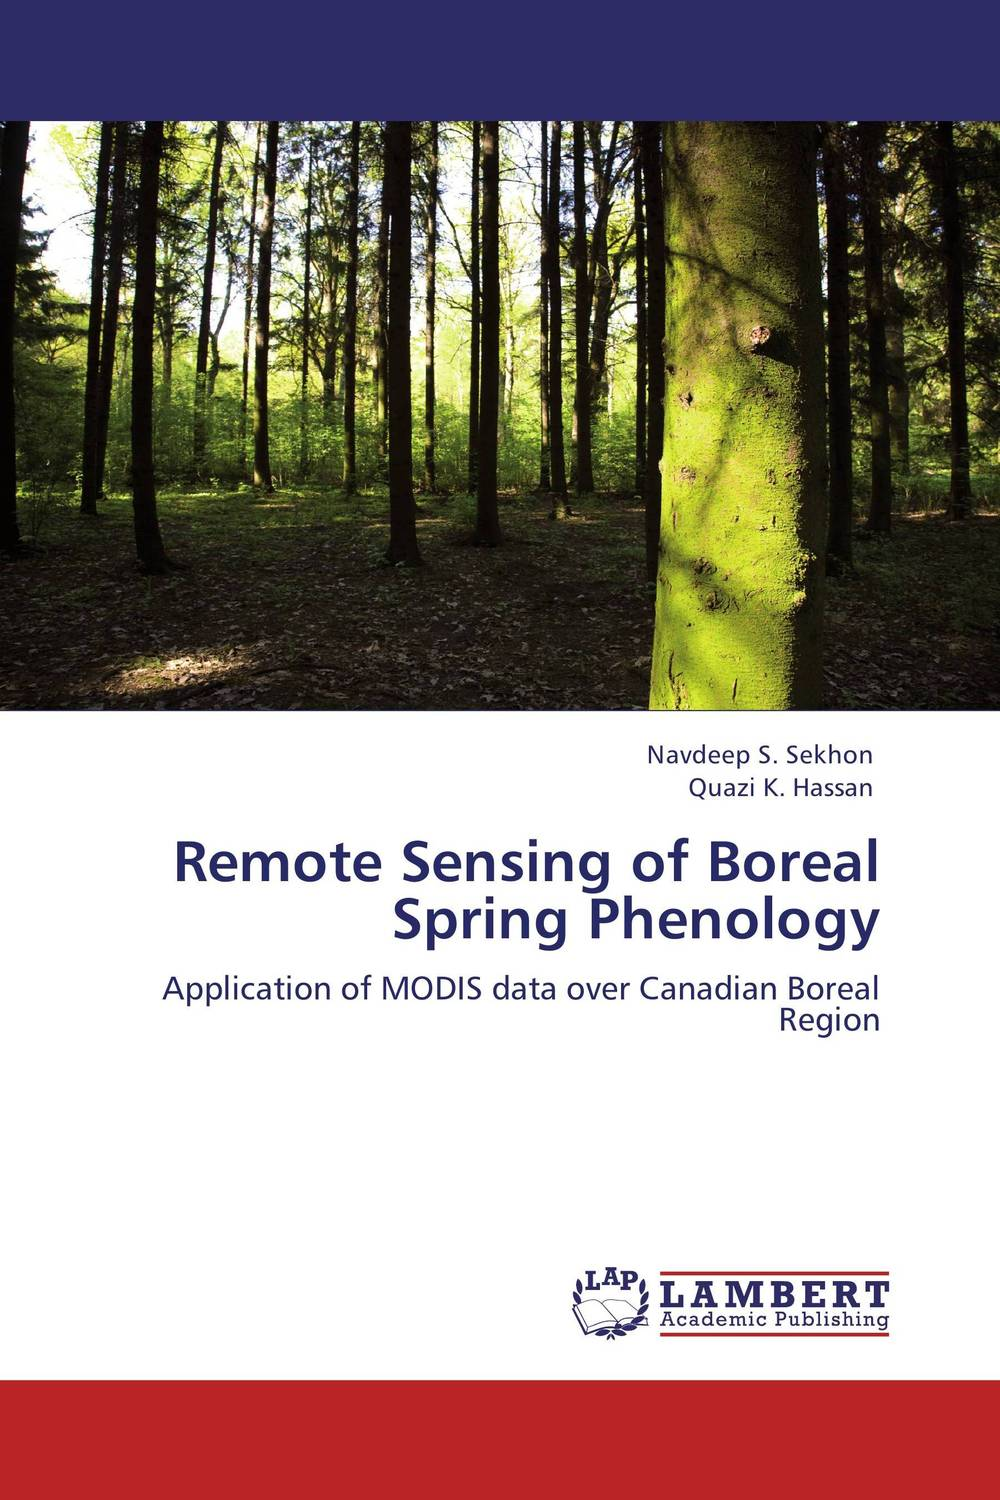 Remote Sensing of Boreal Spring Phenology psychiatric disorders in postpartum period